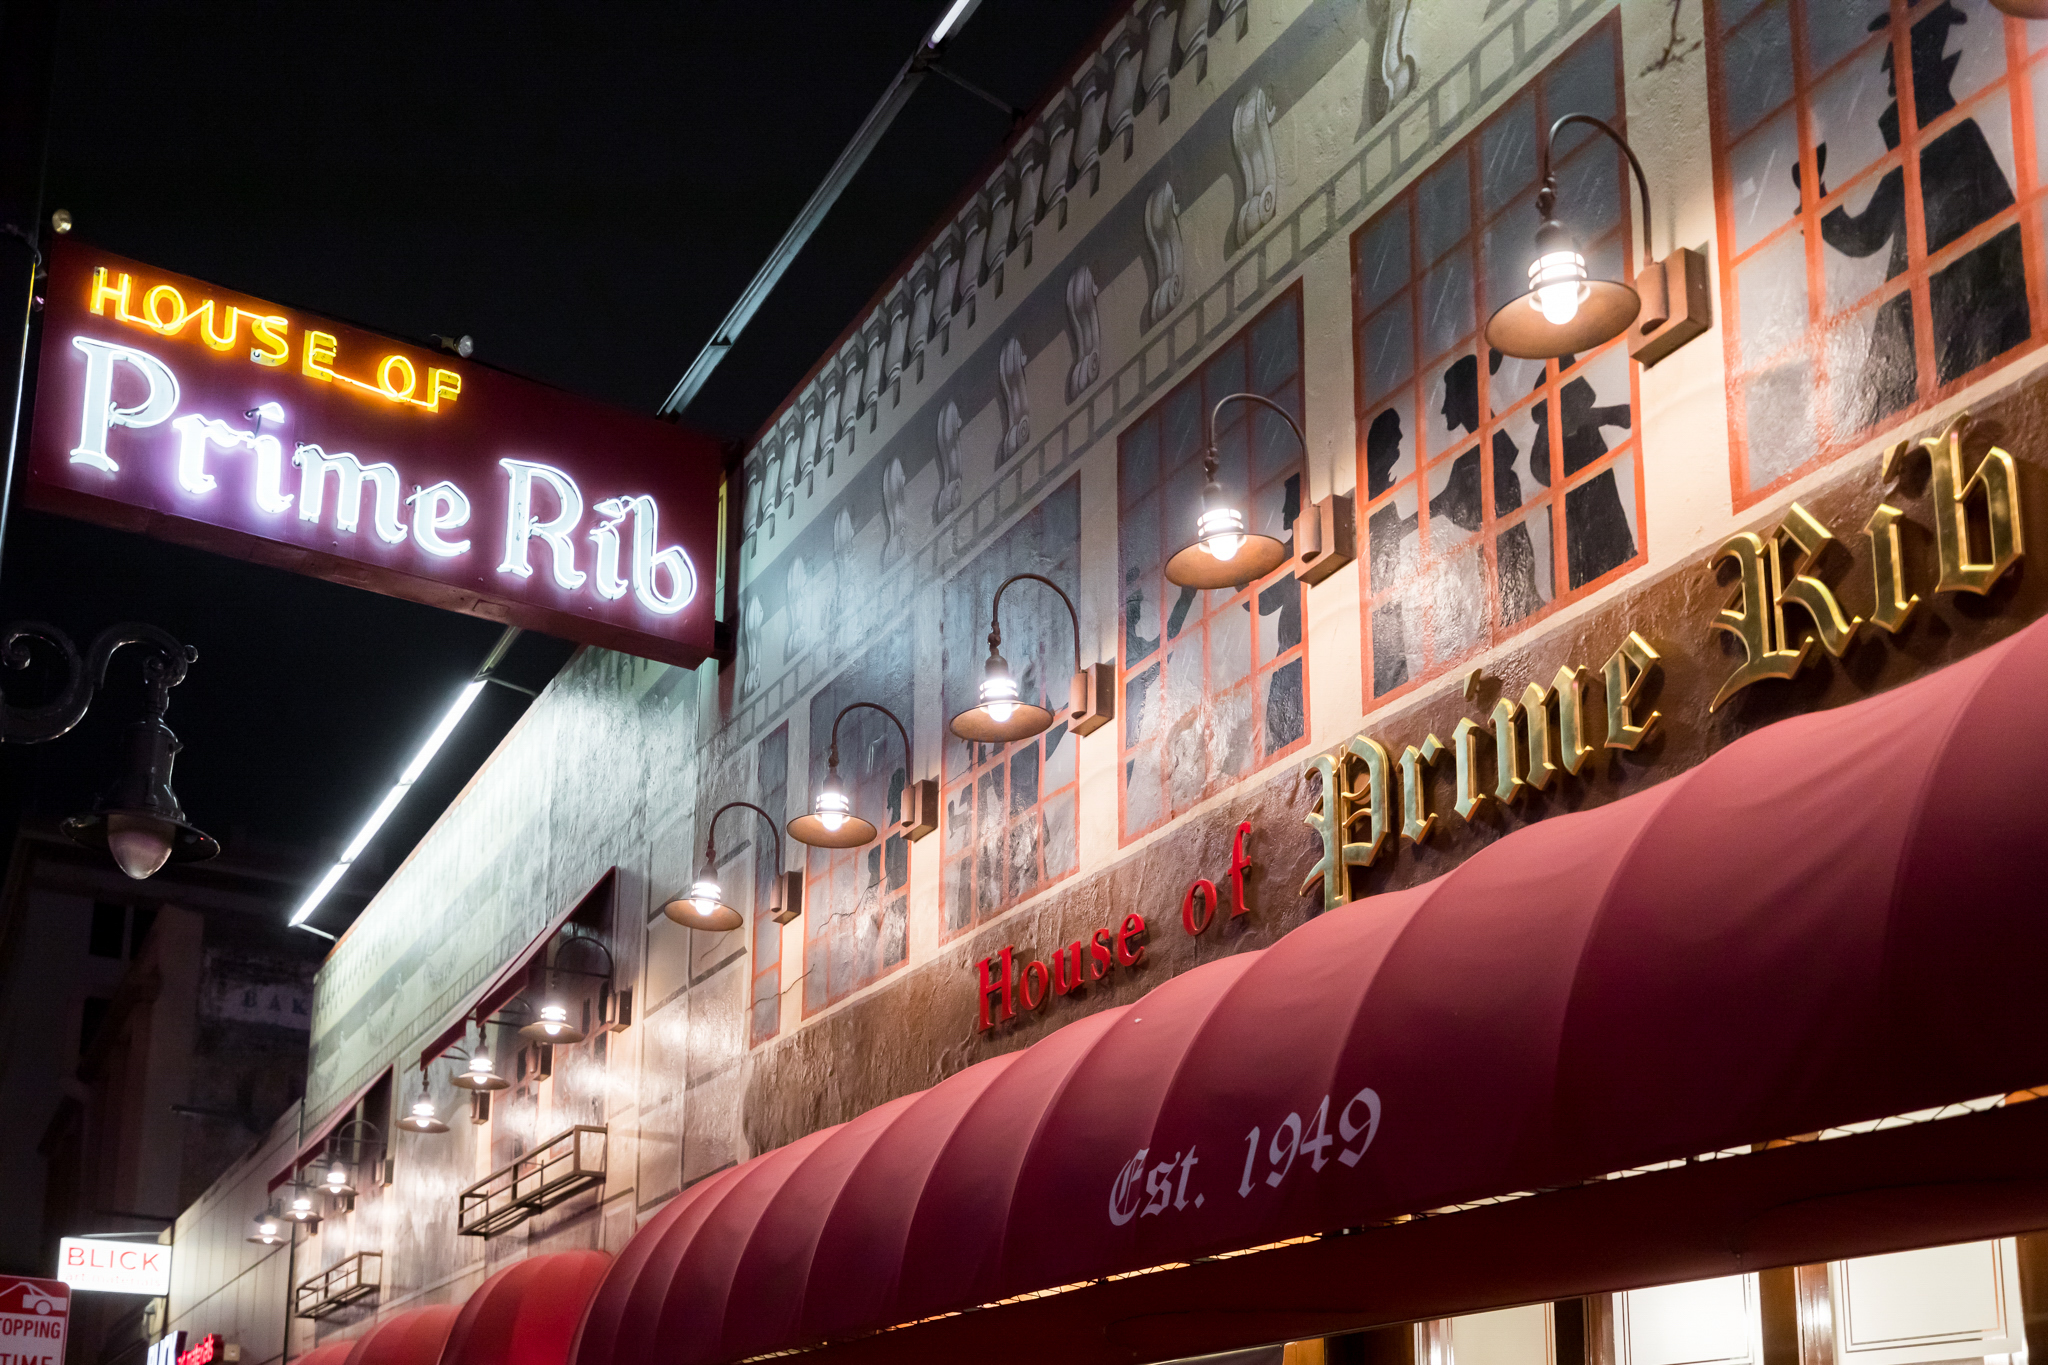 House of Prime Rib inspected by SF health department after complaints of foodborne illness